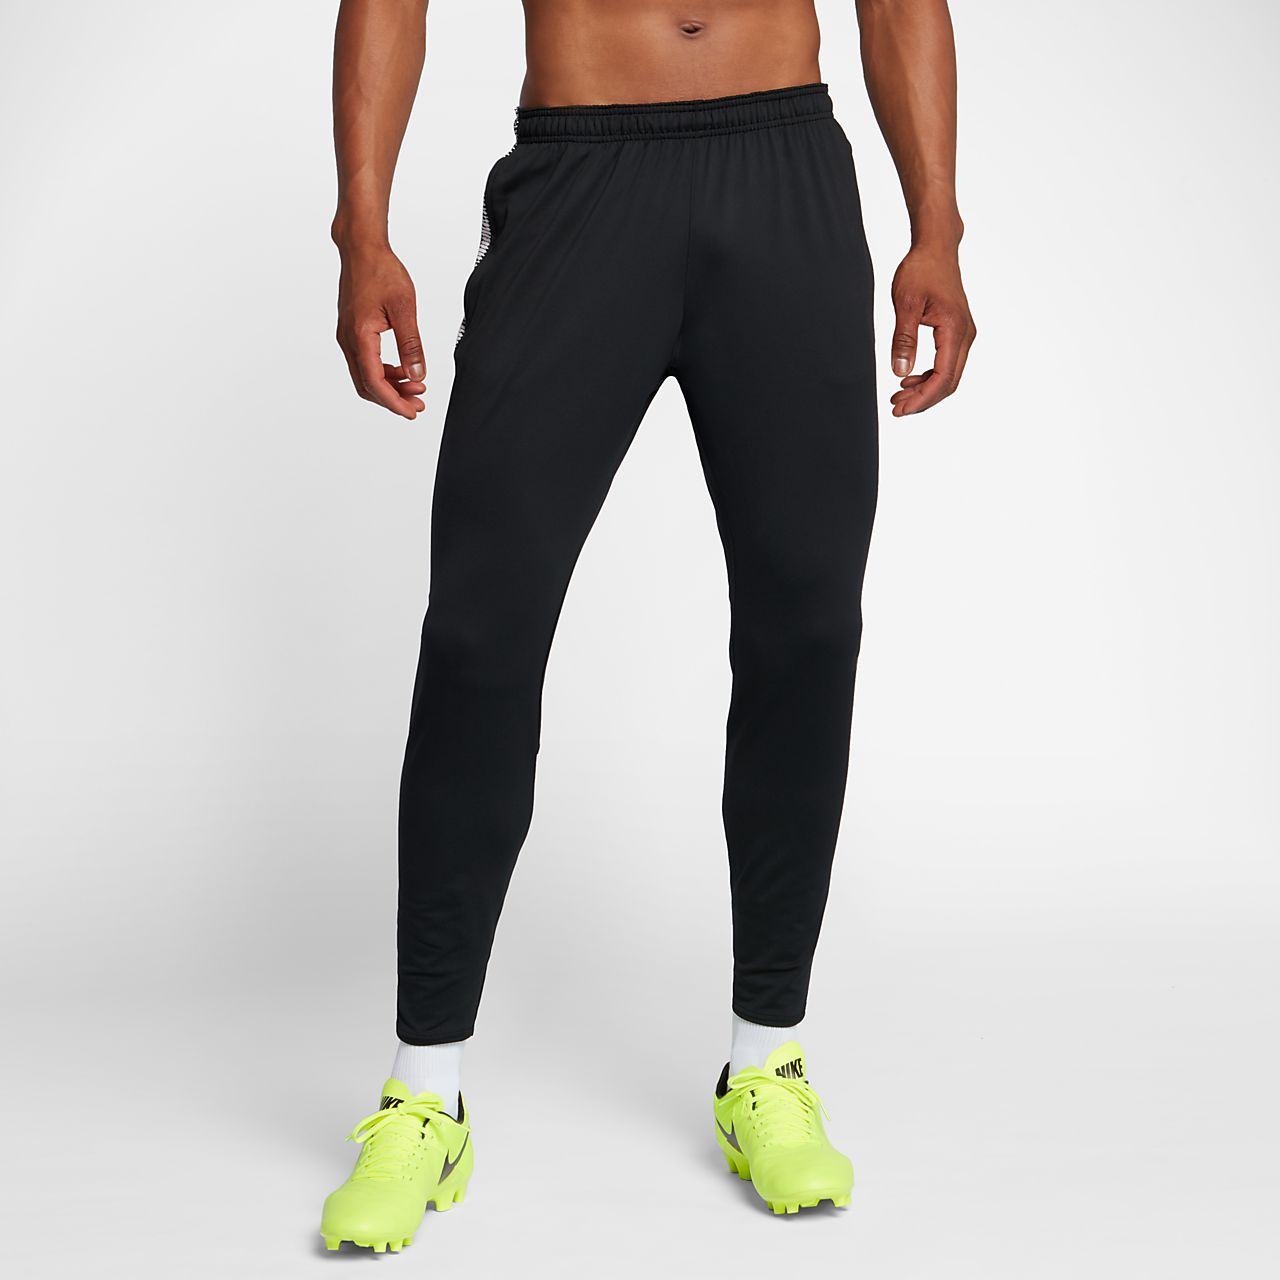 ... Nike Dri-FIT Squad Men's Football Pants